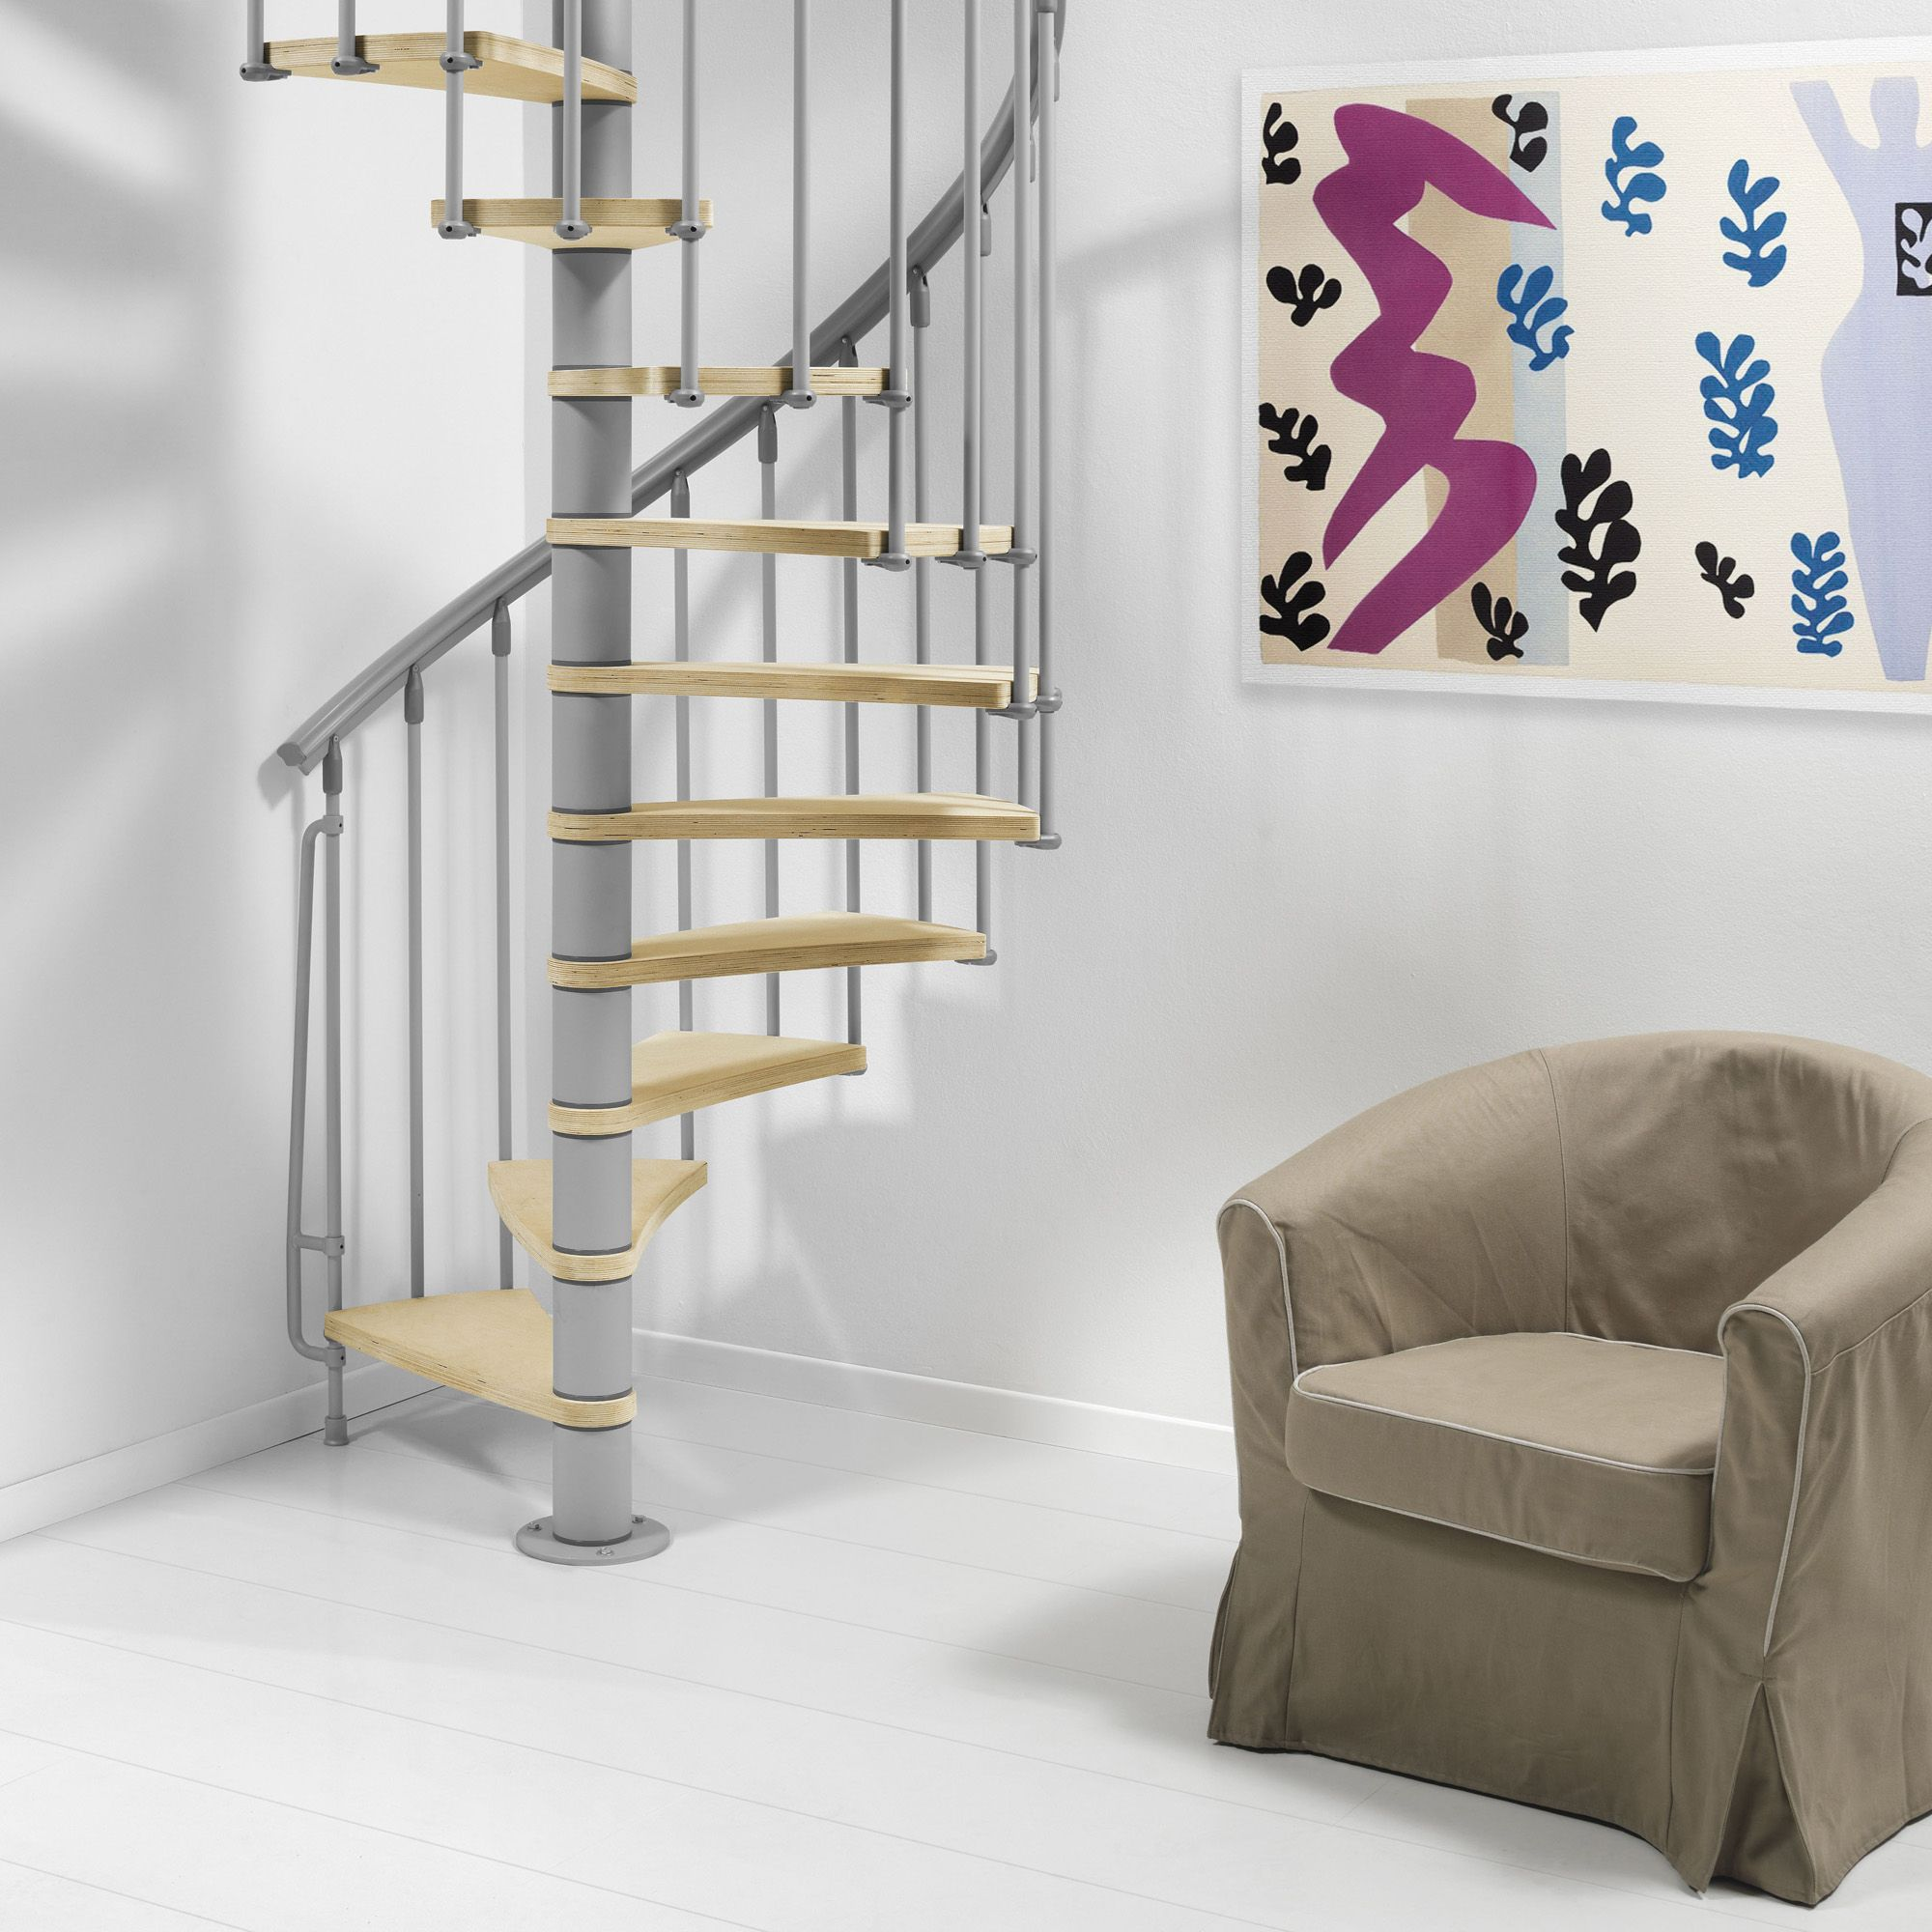 Fontanot Nice Spiral Staircase (D)130 cm